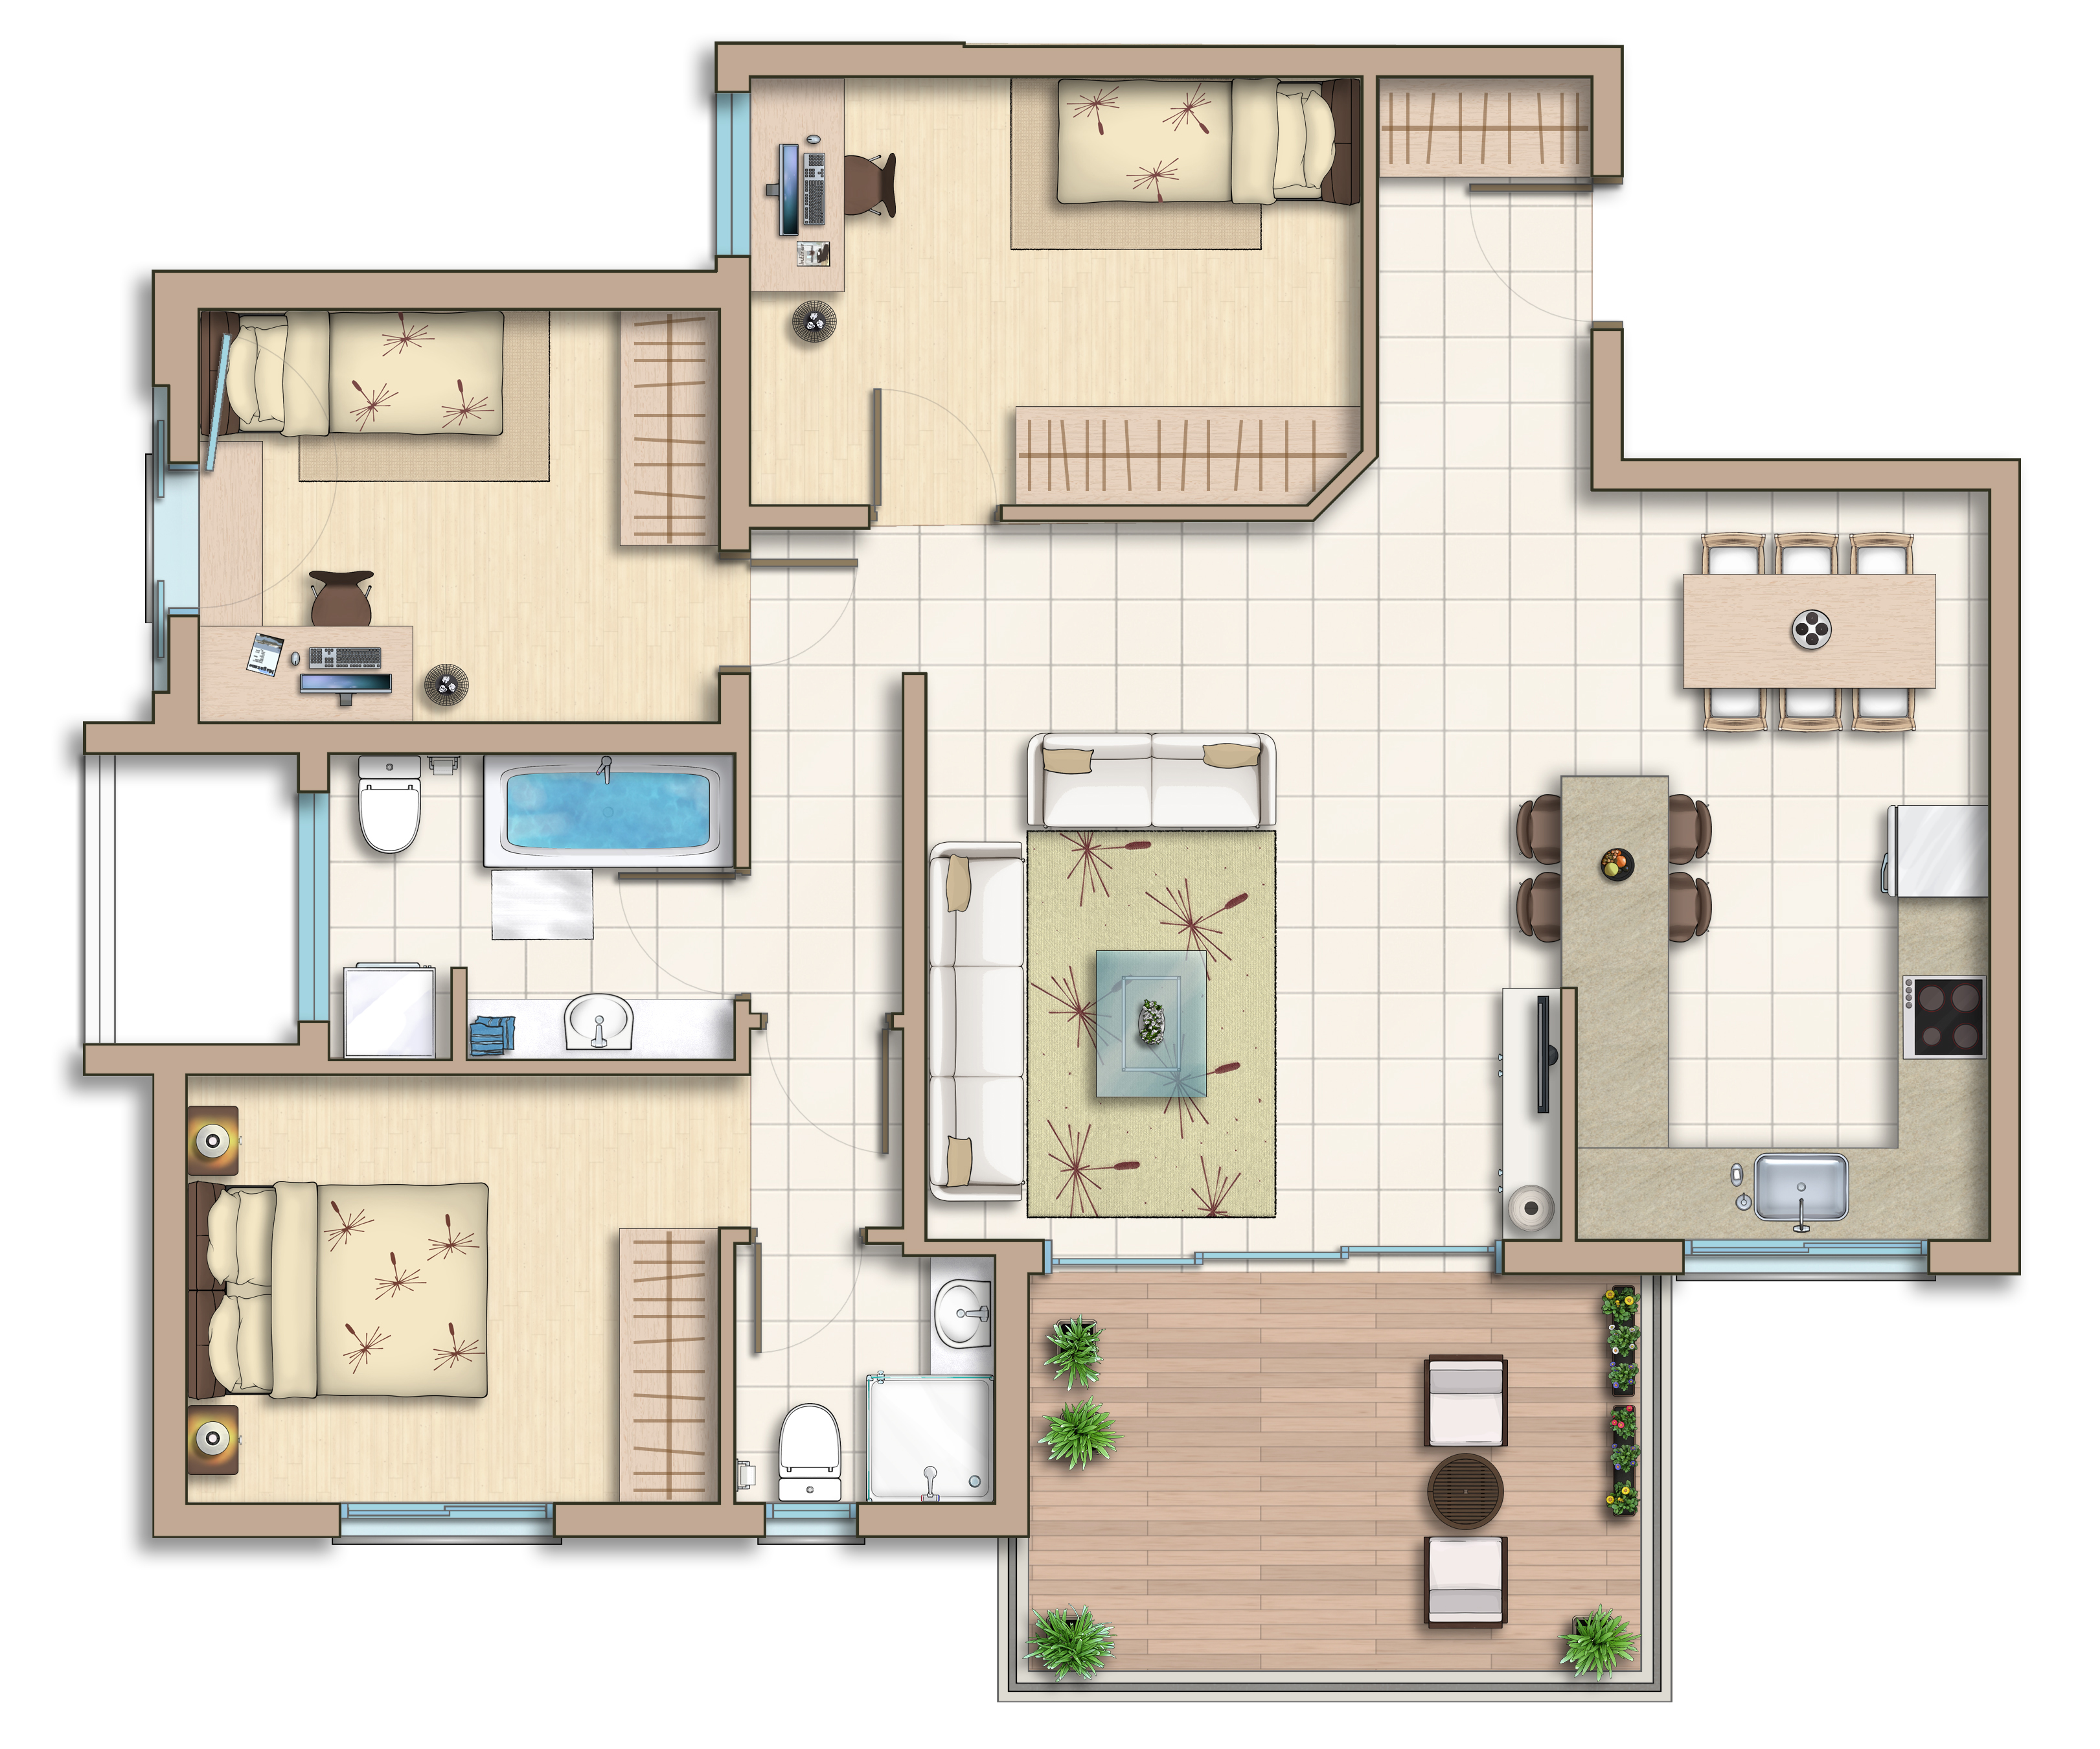 autocad home design with Planos 2d 118999 on Electrical Symbols 1743999 besides Top 10  work Diagram Topology And Mapping Software moreover Anwendungen together with 215 Marni Logo Download in addition Apps And Architecture.